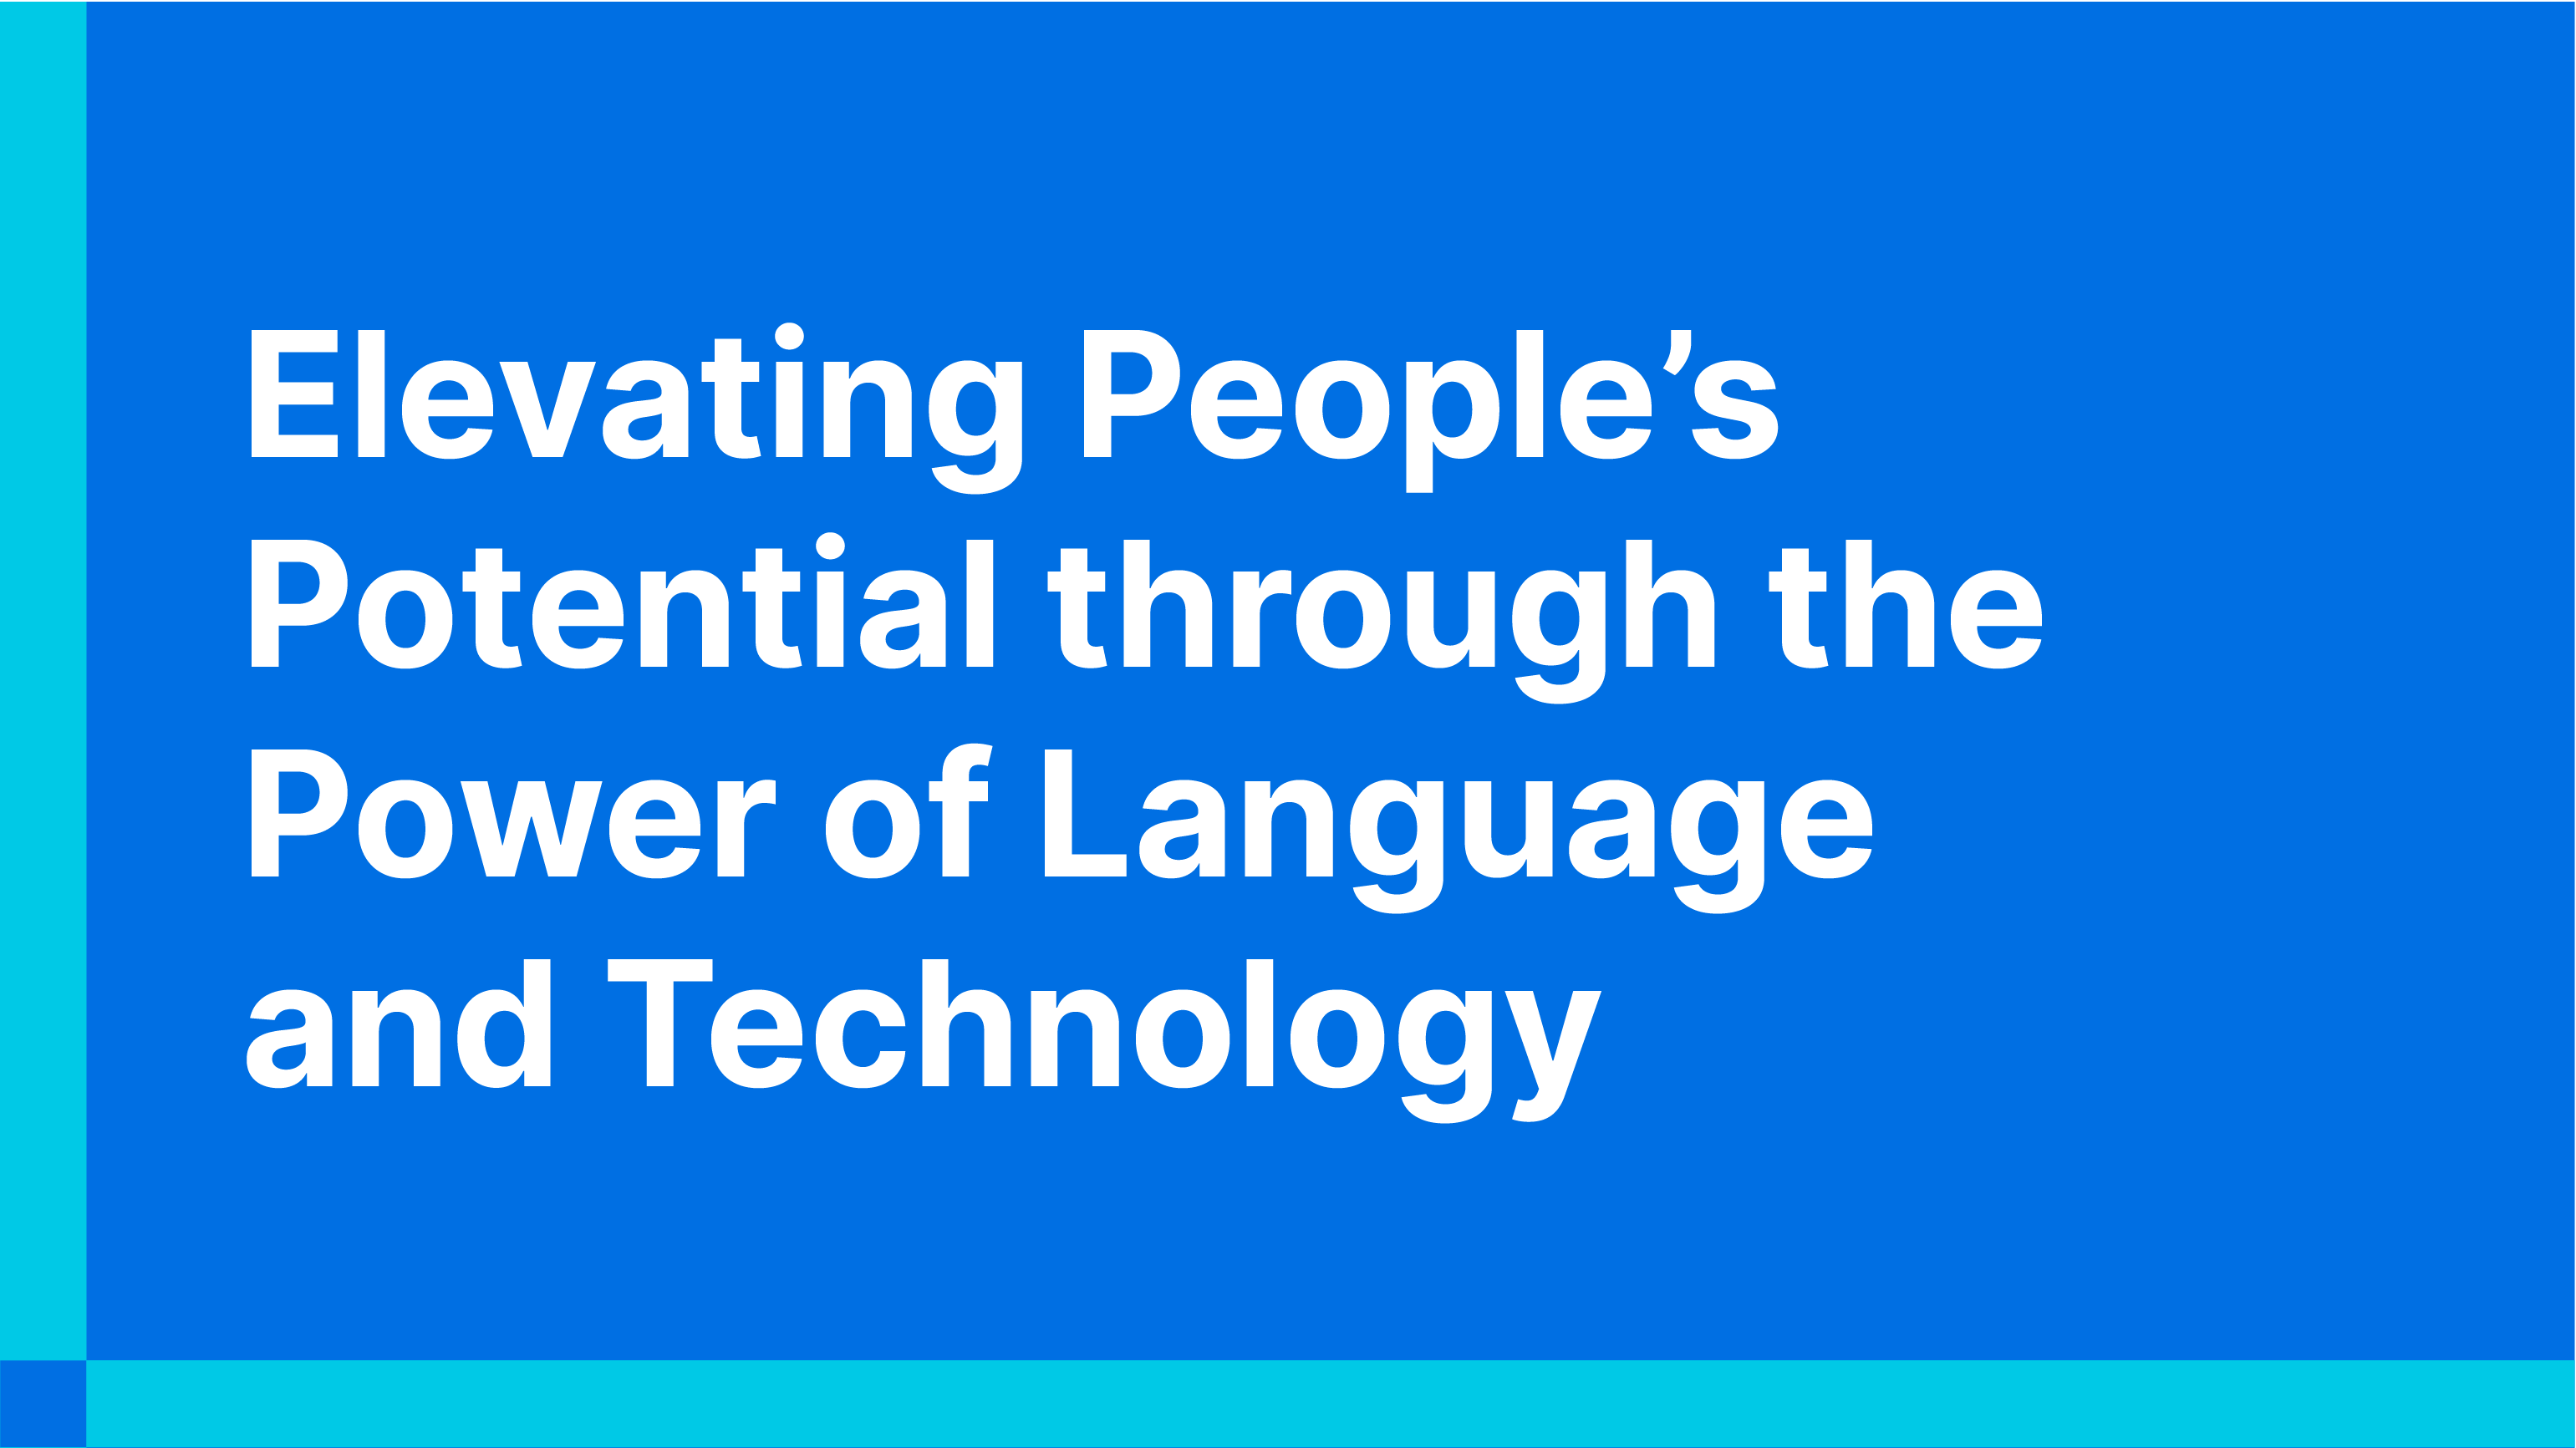 """To achieve our goal of creating solutions that enable a strong synergy between humans and technology, we at Kata.ai put our mission of """"Elevating People's Potential through the Power of Language and Technology"""" to heart."""